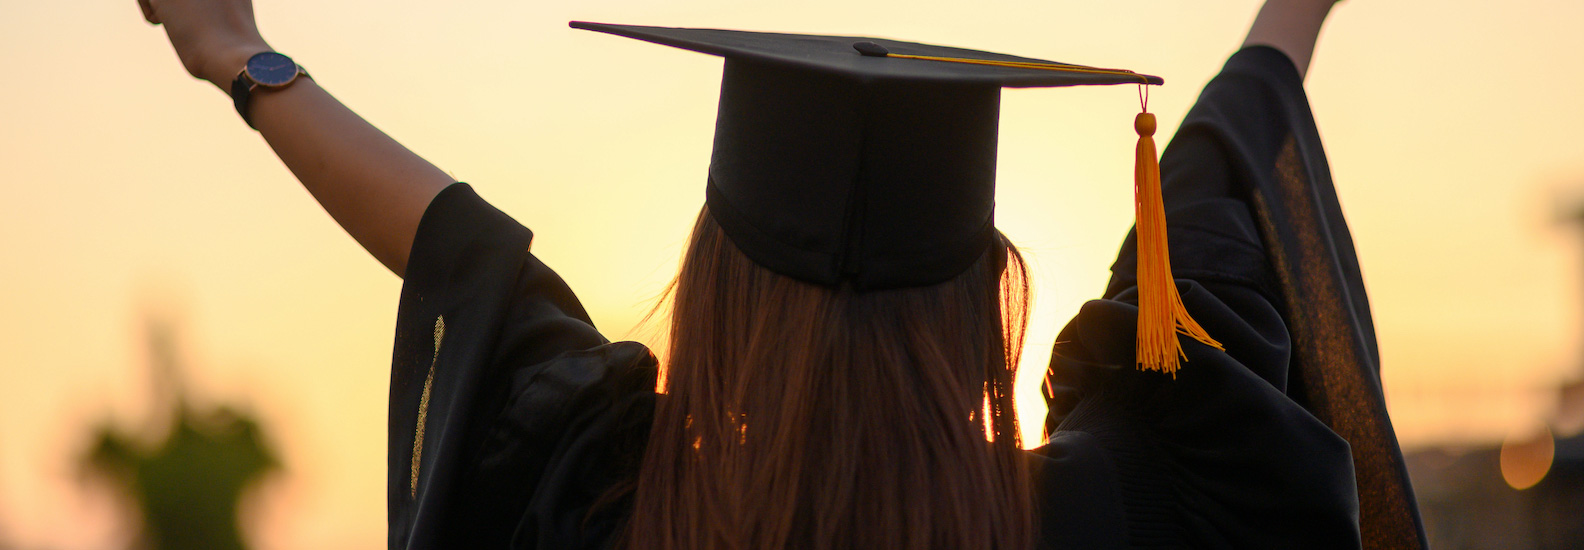 woman wearing black graduation hat and gown with arms up celebrating